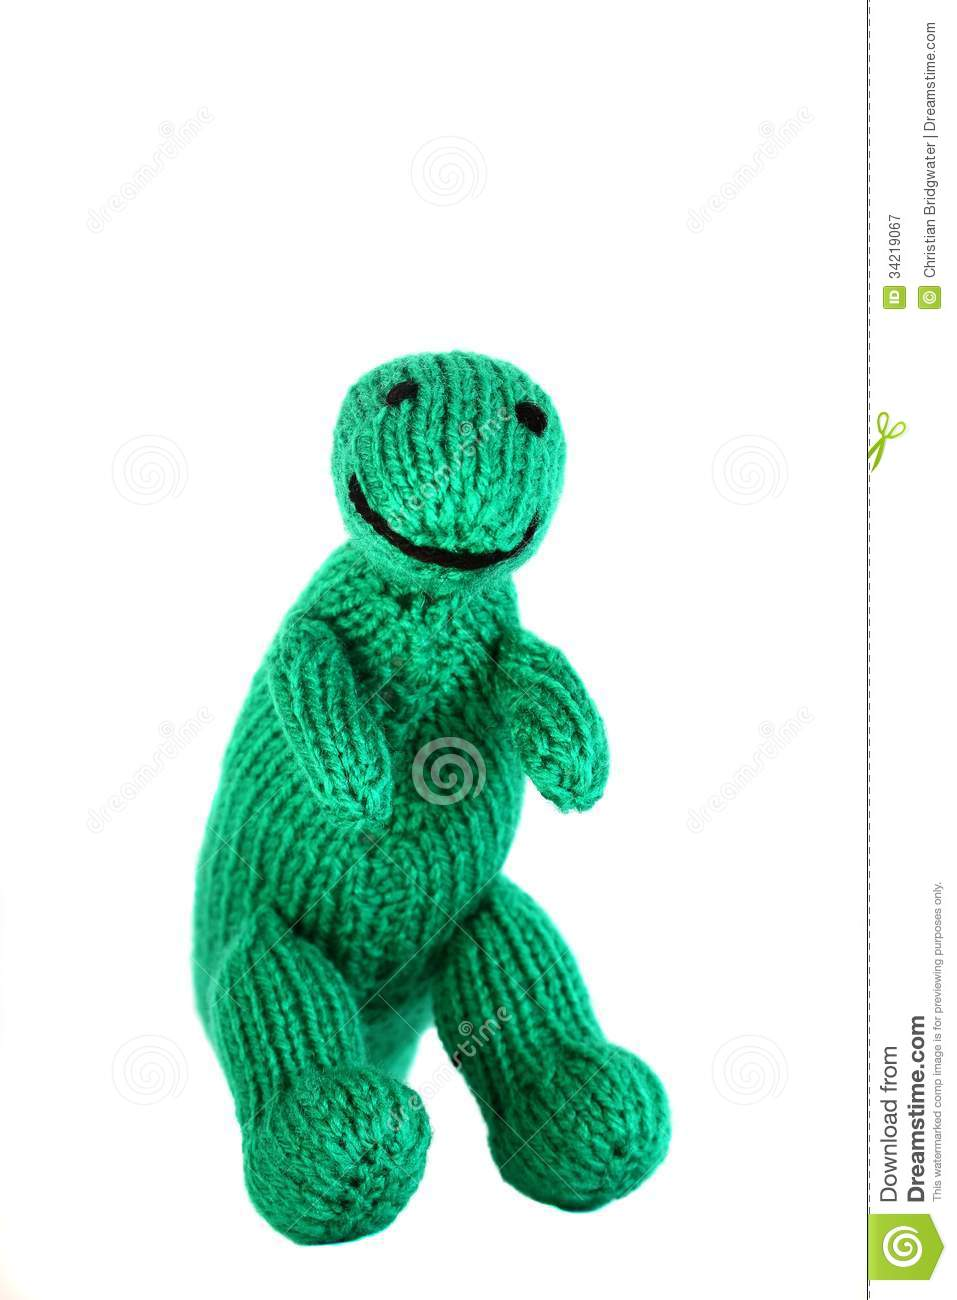 Knitting Pattern Dinosaur Toy : Knitted Toy Dinosaur C Royalty Free Stock Photography - Image: 34219067